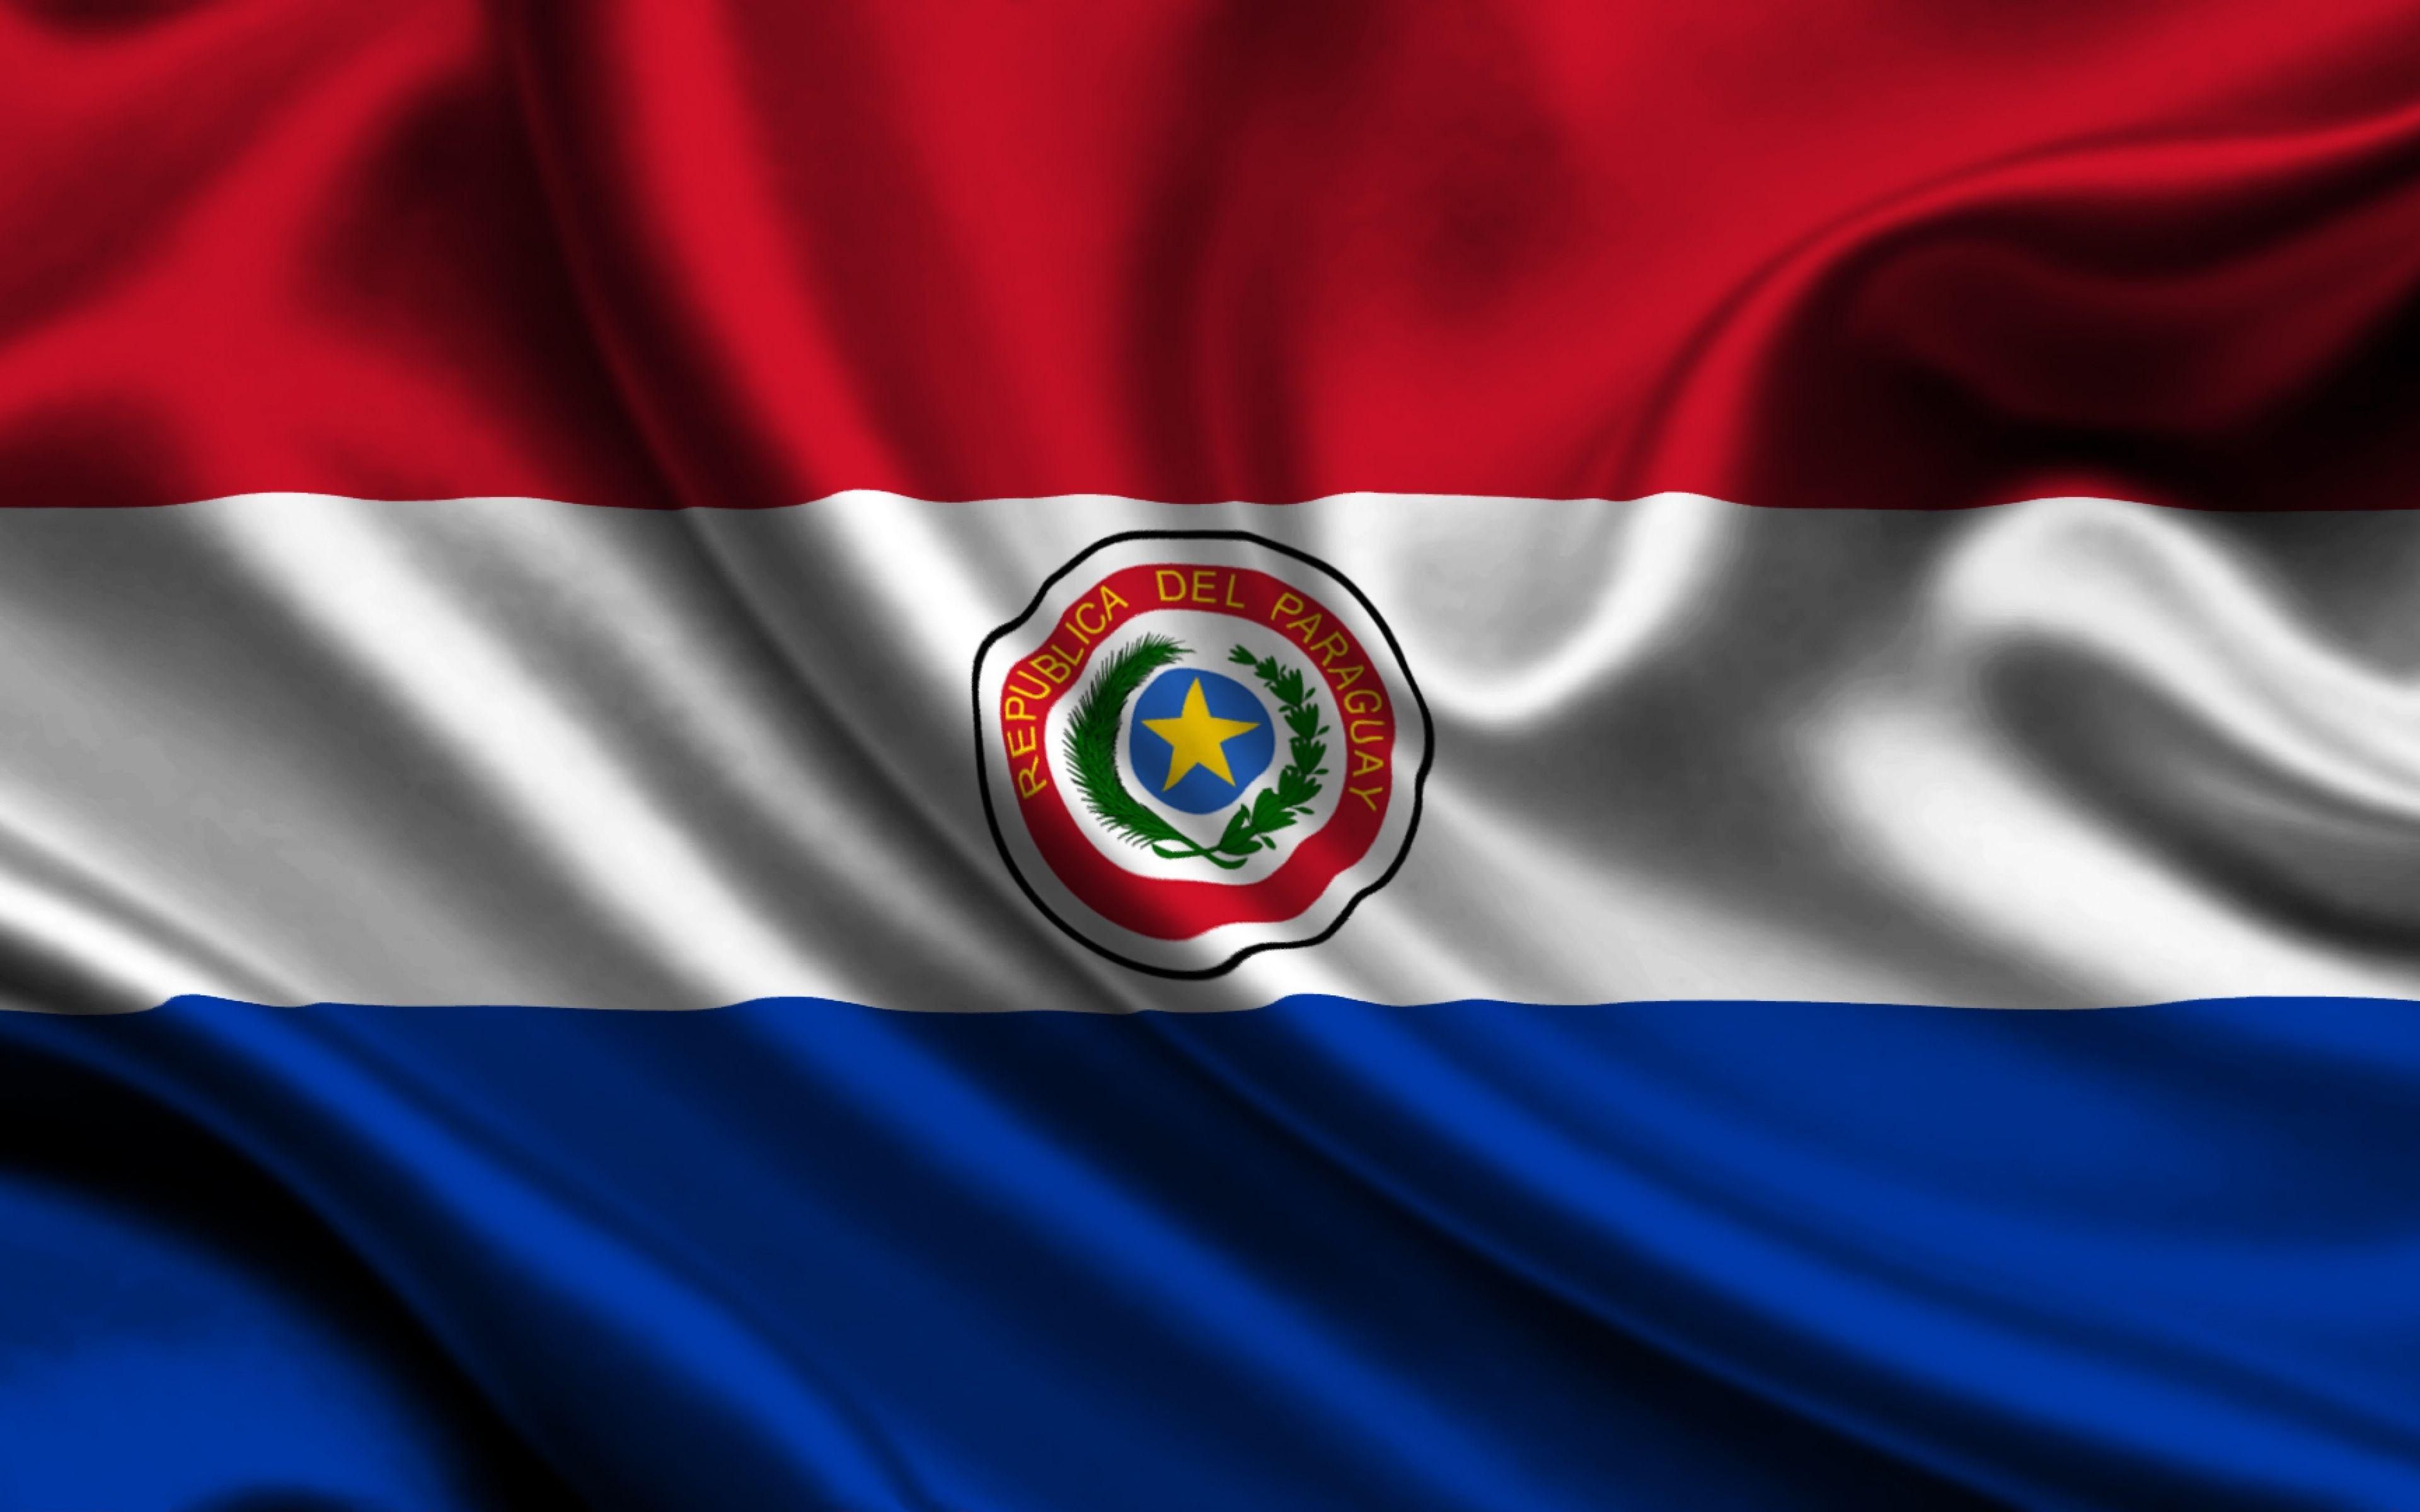 Download Wallpapers 3840x2400 Paraguay, Satin, Flag, Symbol, Star